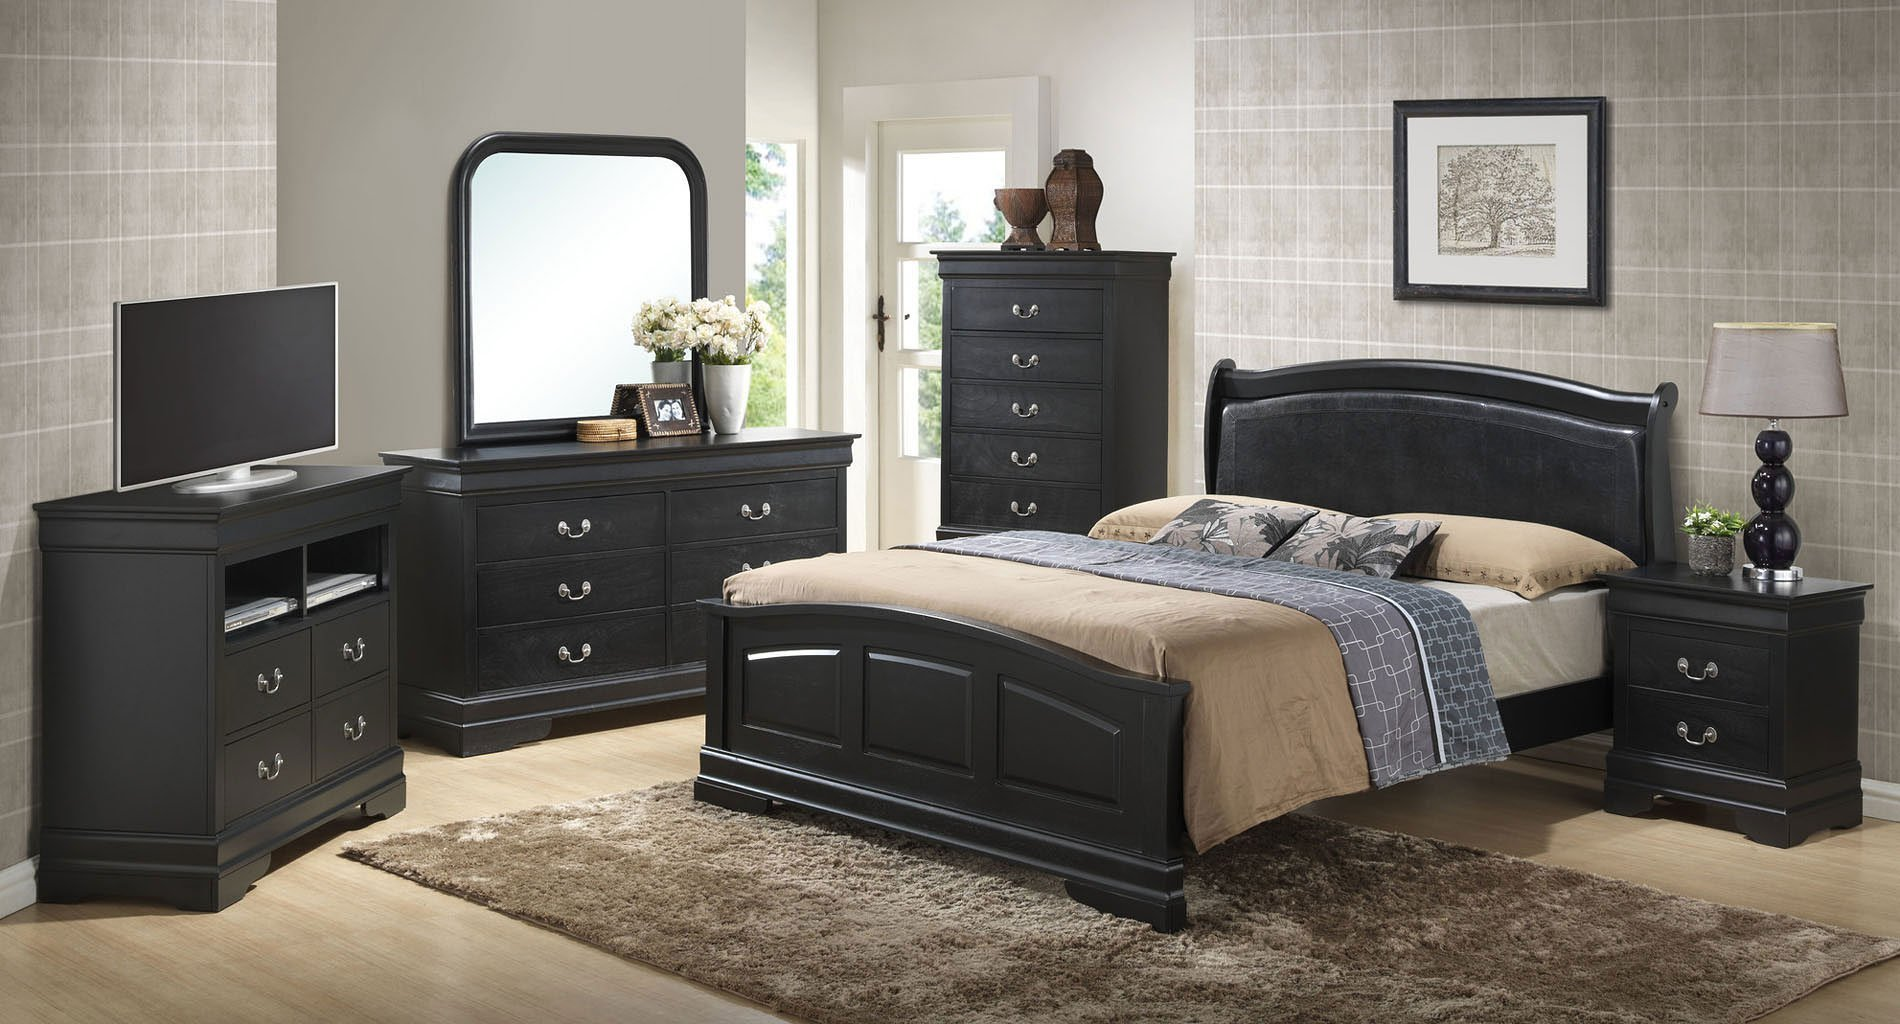 Best G3150 Upholstered Headboard Bedroom Set Glory Furniture With Pictures